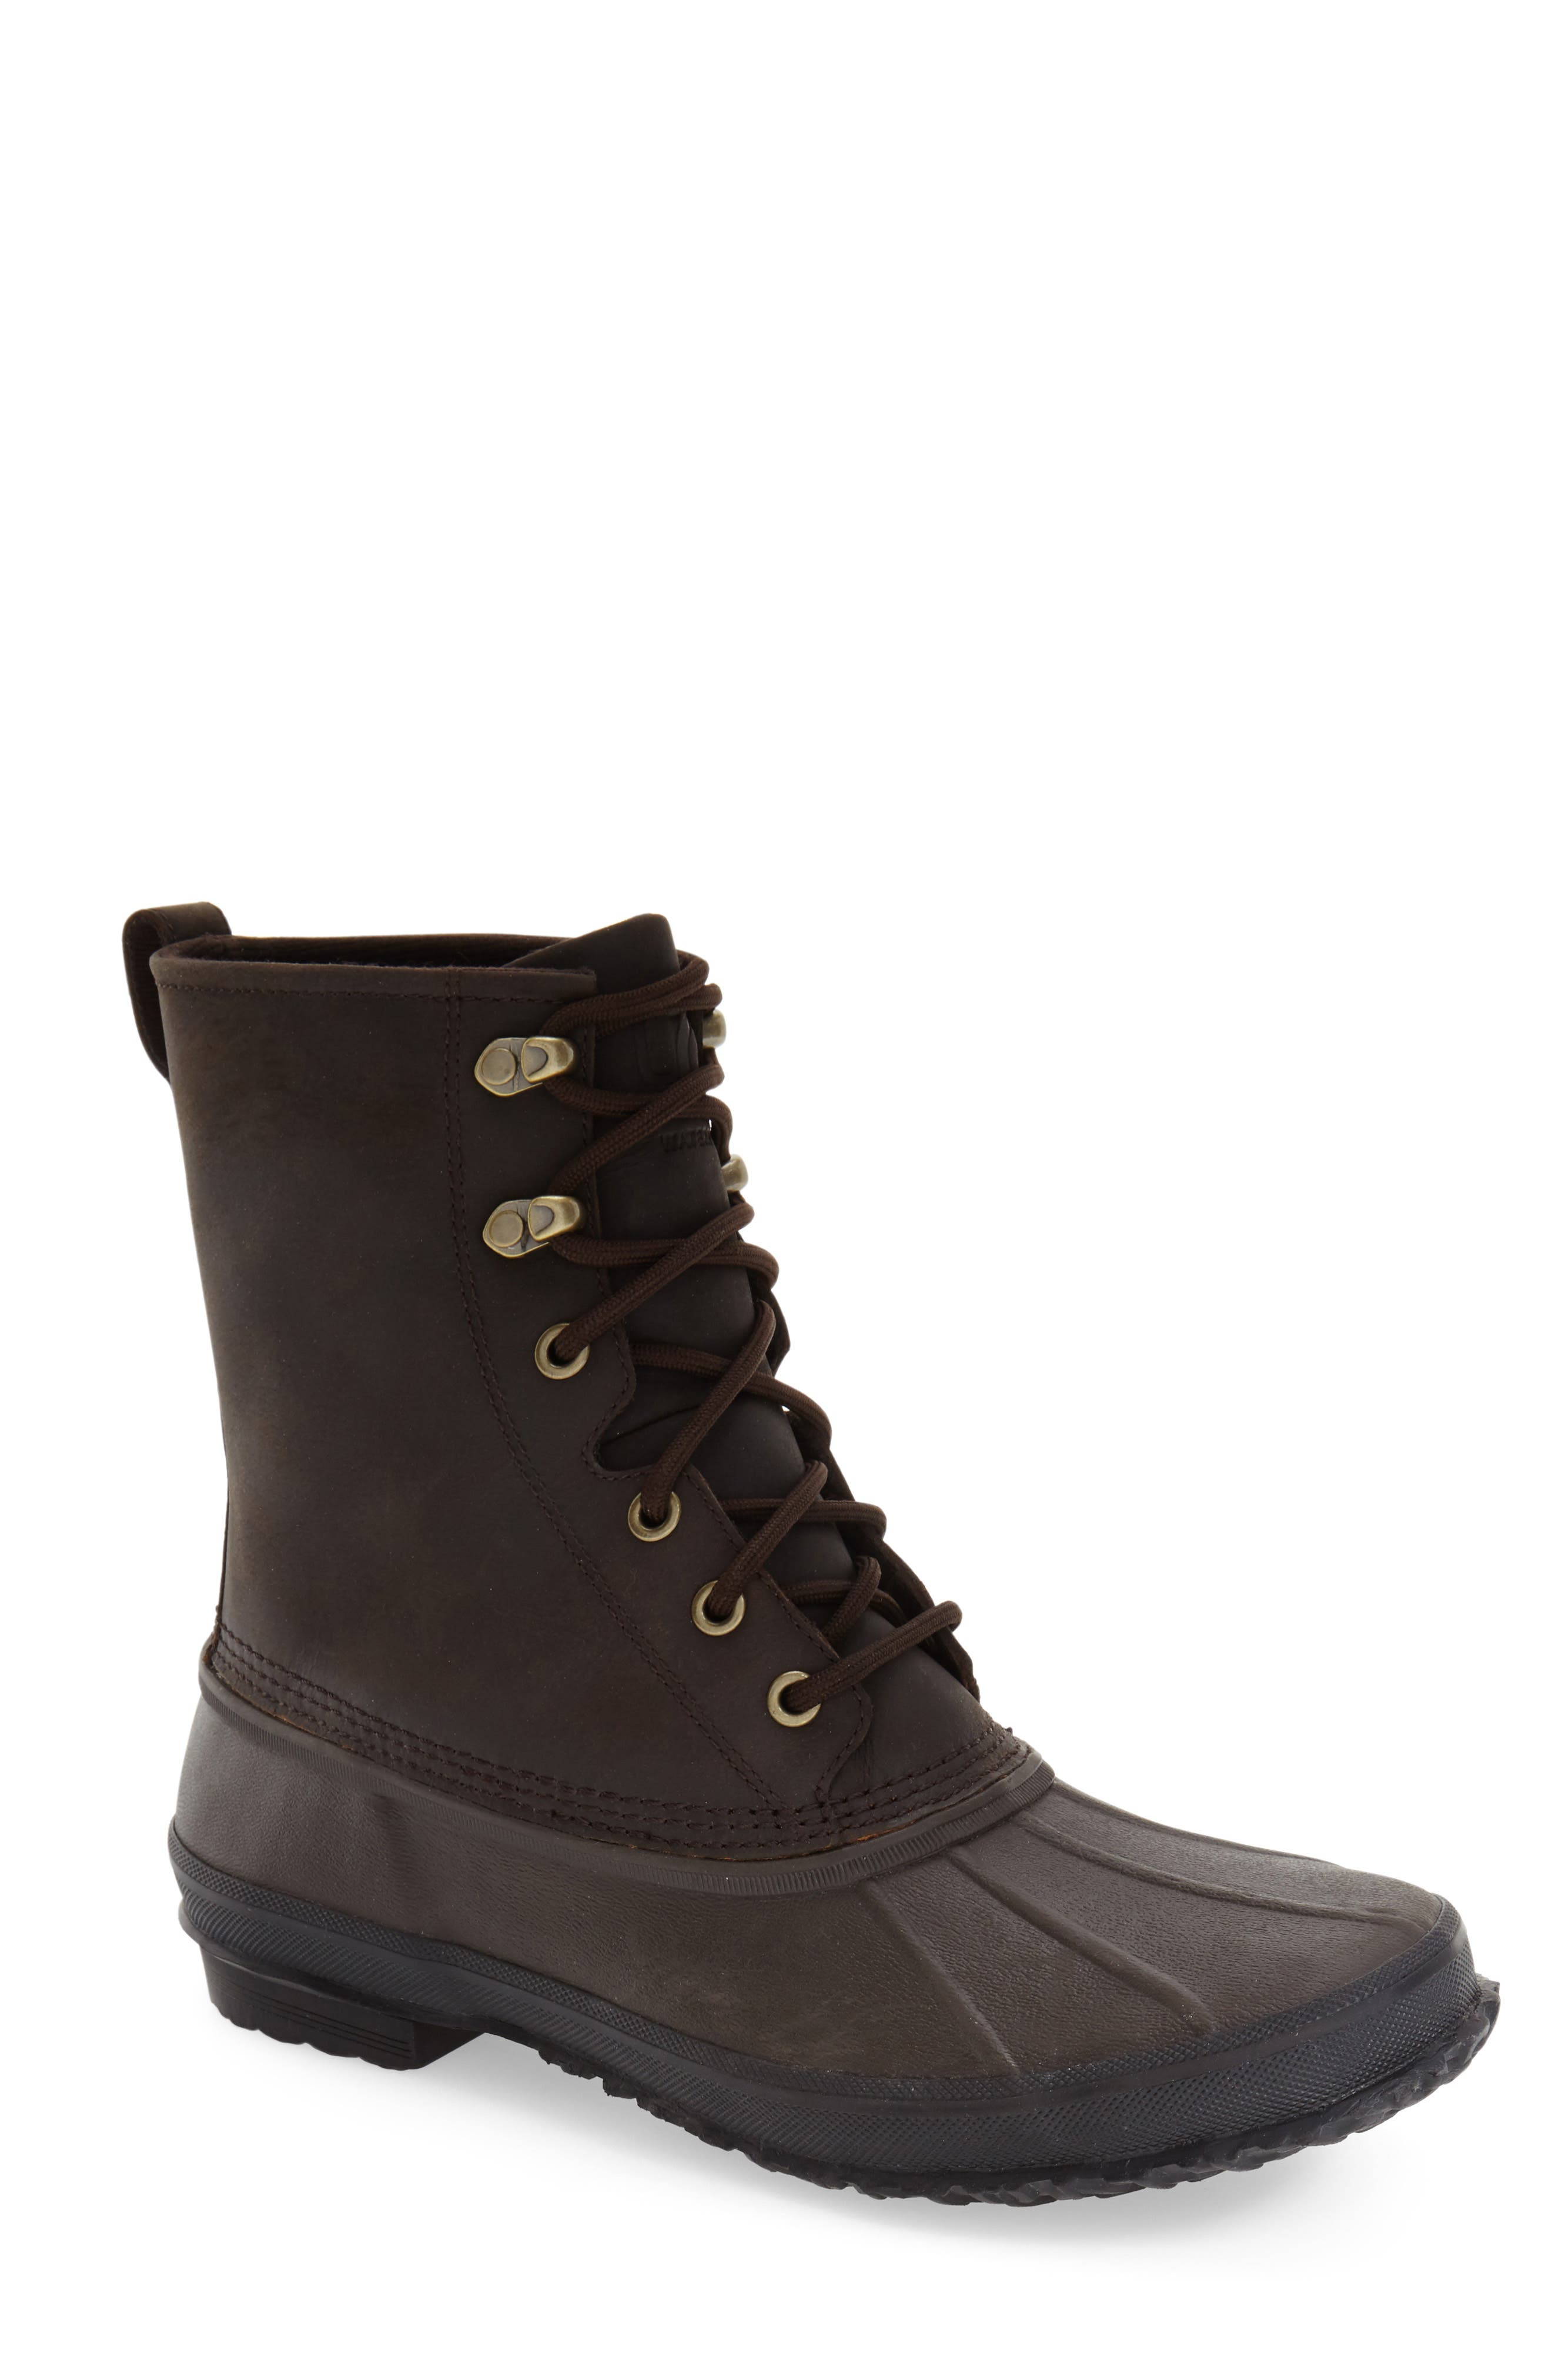 Yucca Rain Boot,                             Alternate thumbnail 6, color,                             STOUT